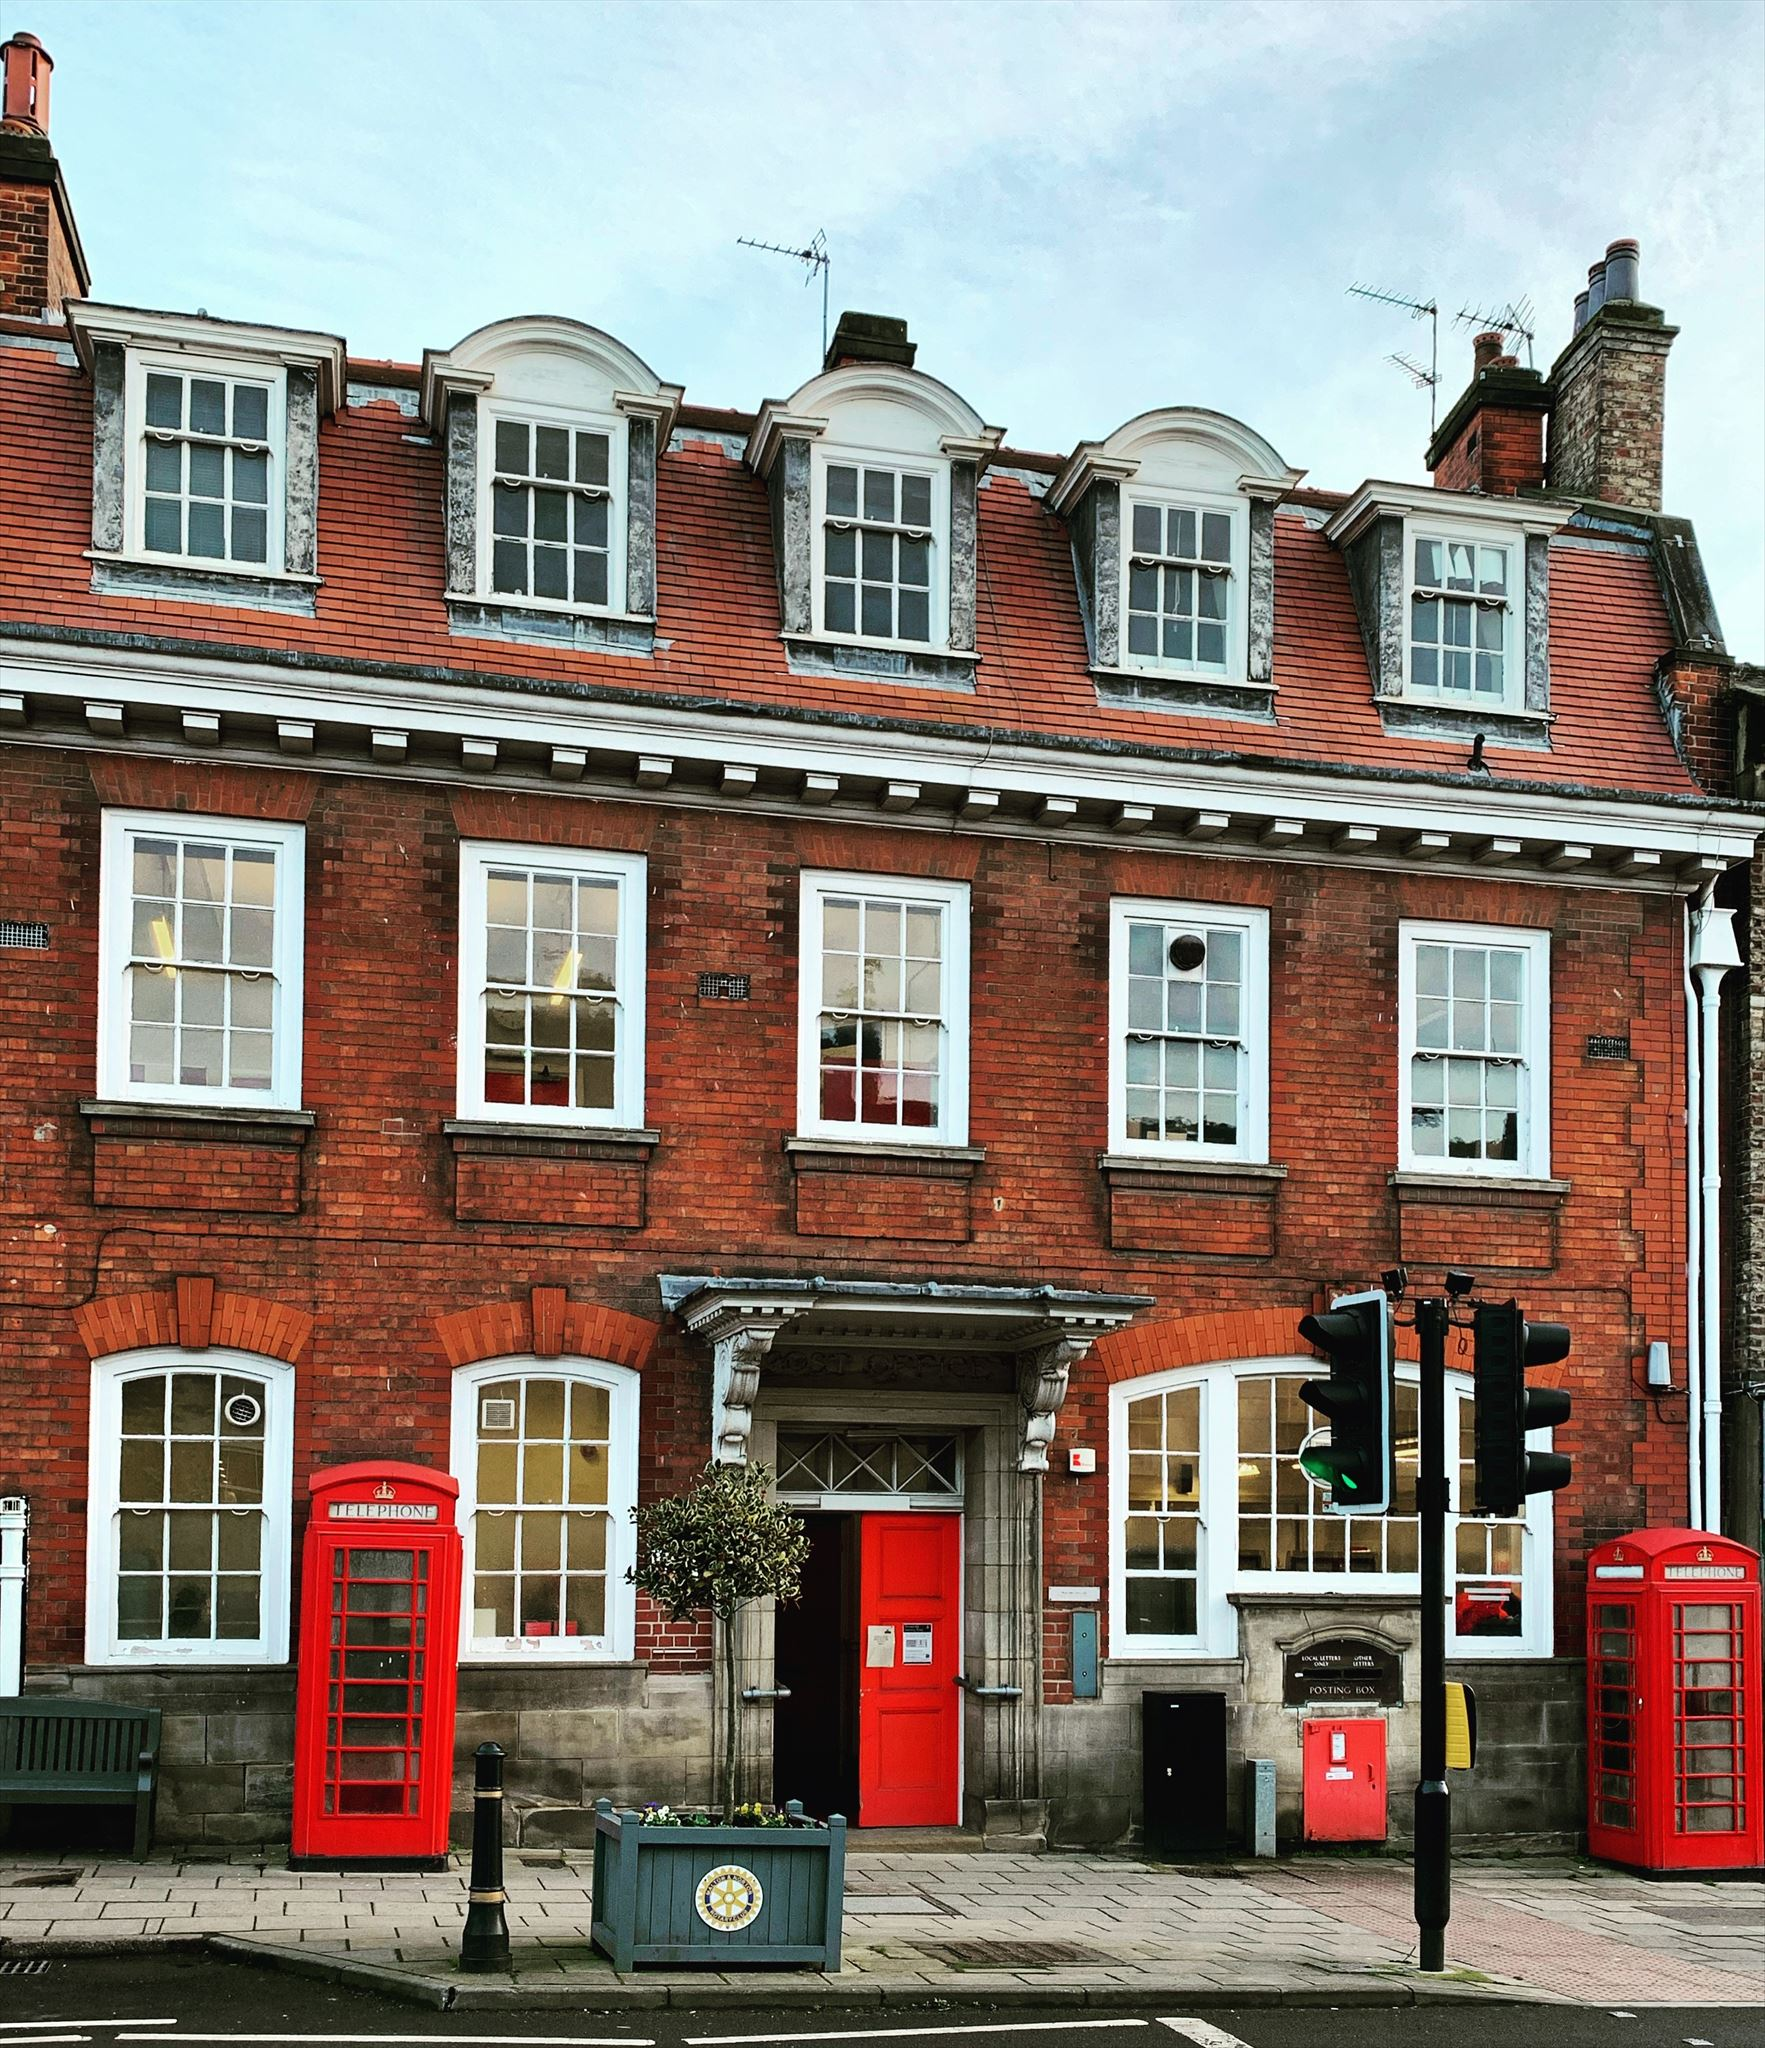 A Fine Pair #1520. Post Office, Wheelgate Malton with 2 x red K6 telephone boxes and a red post box. c2020